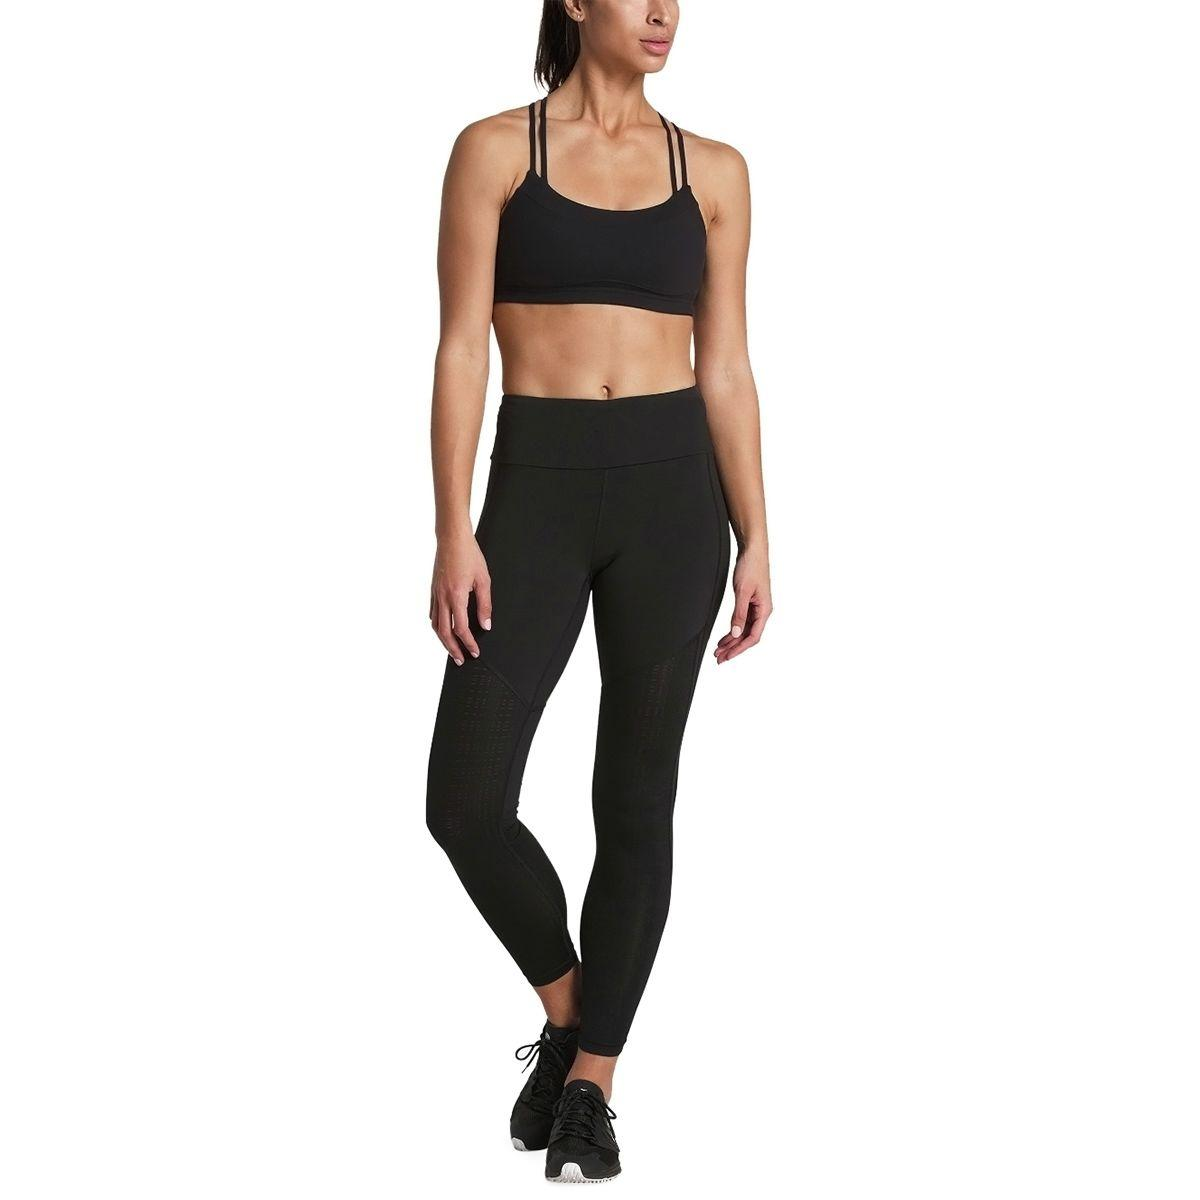 0f2332fc9 Lyst - The North Face Dayology Mid-rise 7/8 Tight in Black